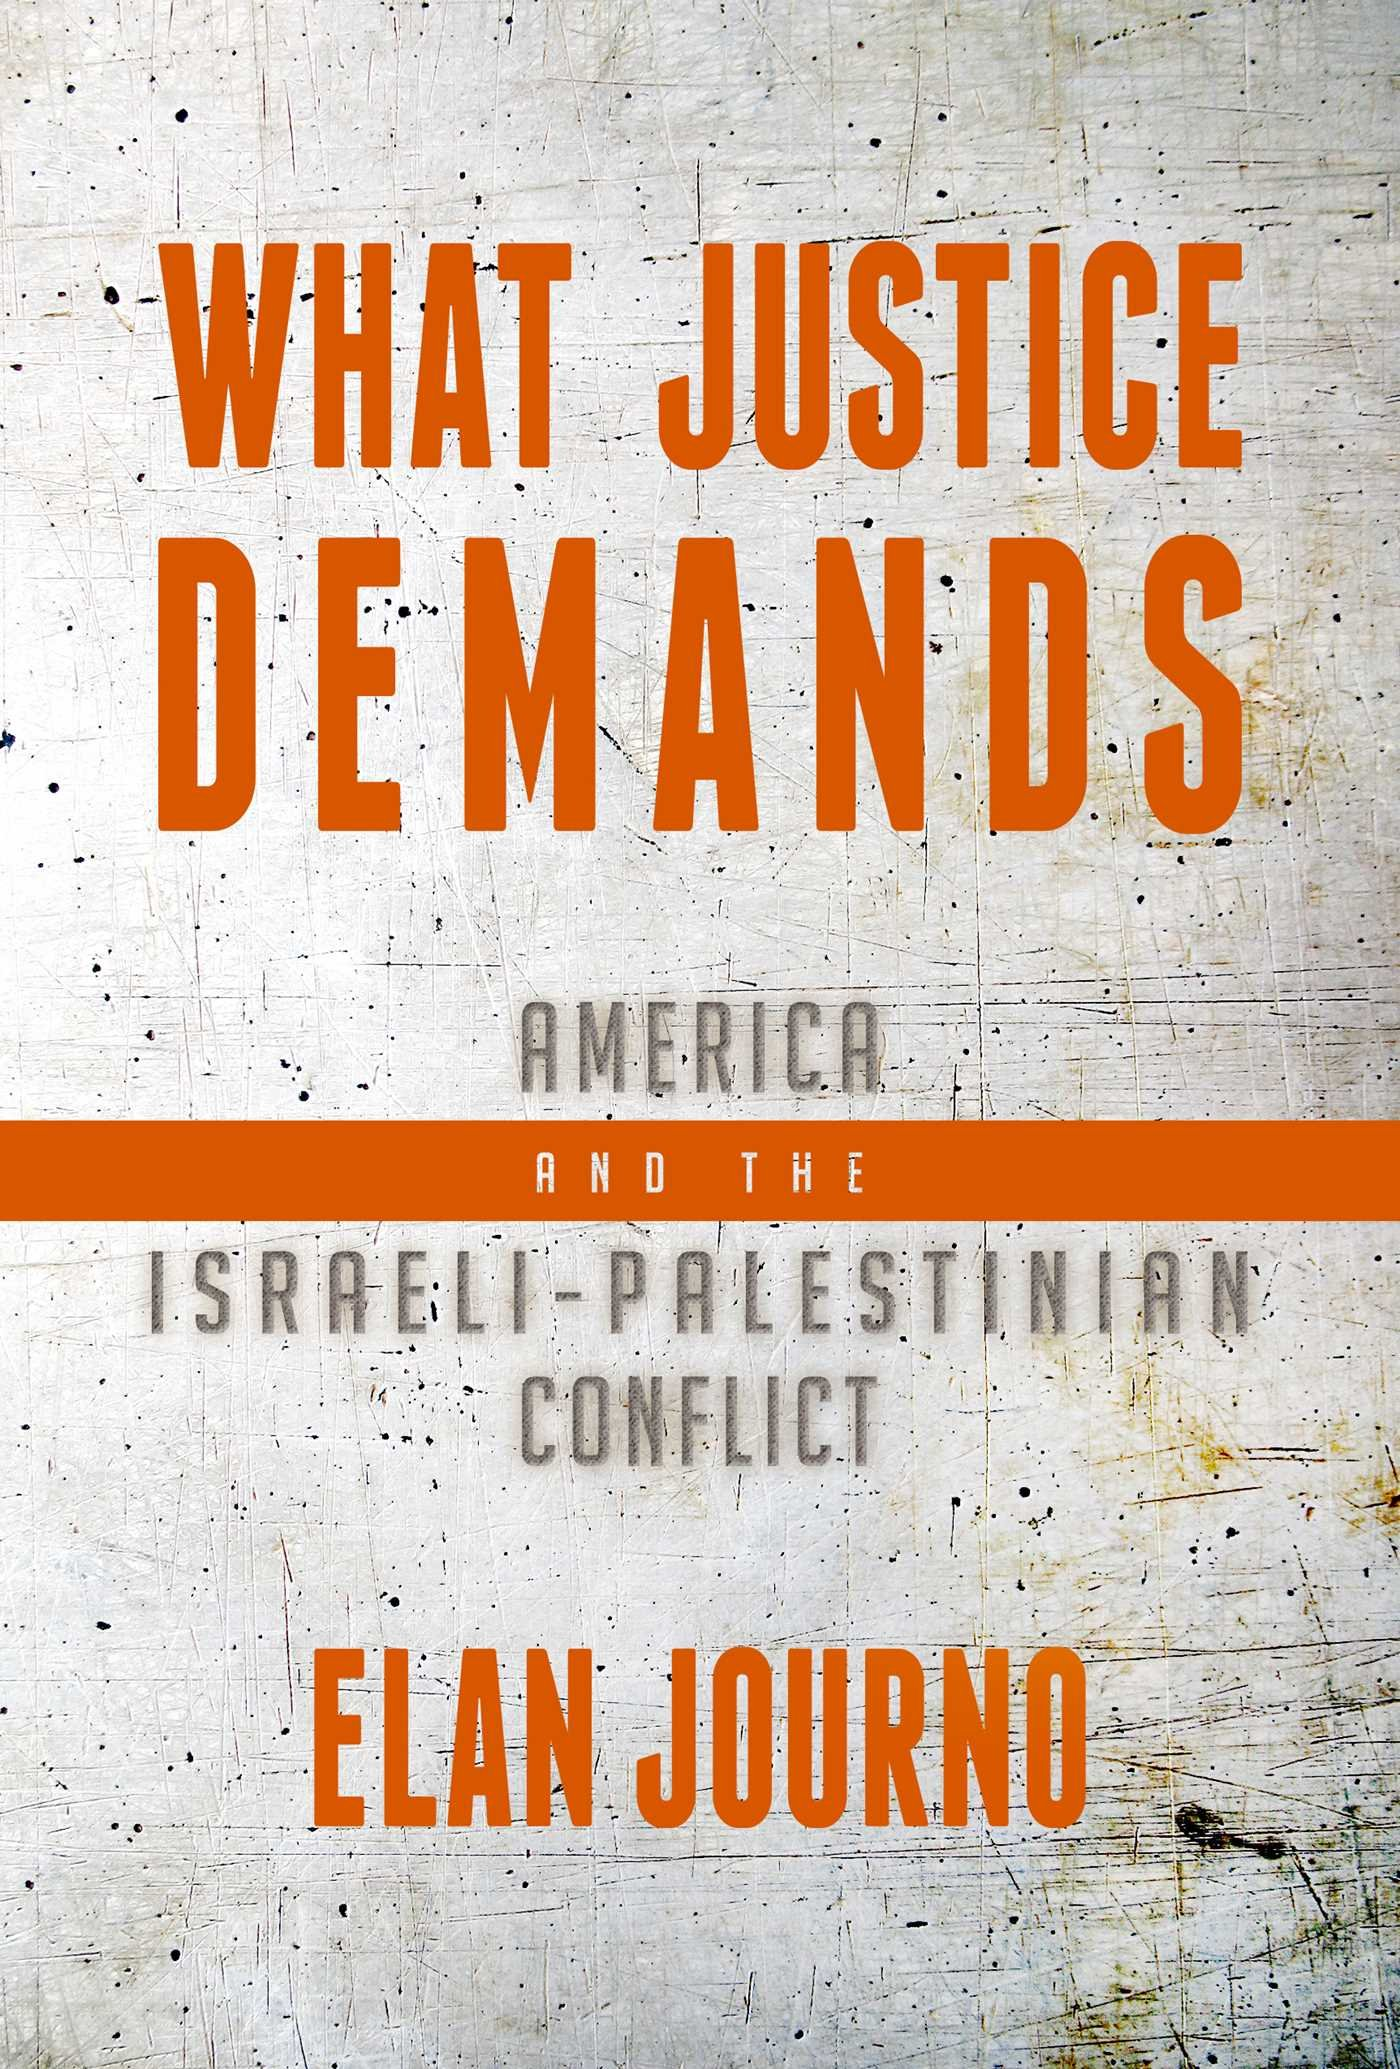 Amazon.com: What Justice Demands: America and the Israeli-Palestinian  Conflict (9781682617984): Elan Journo: Books